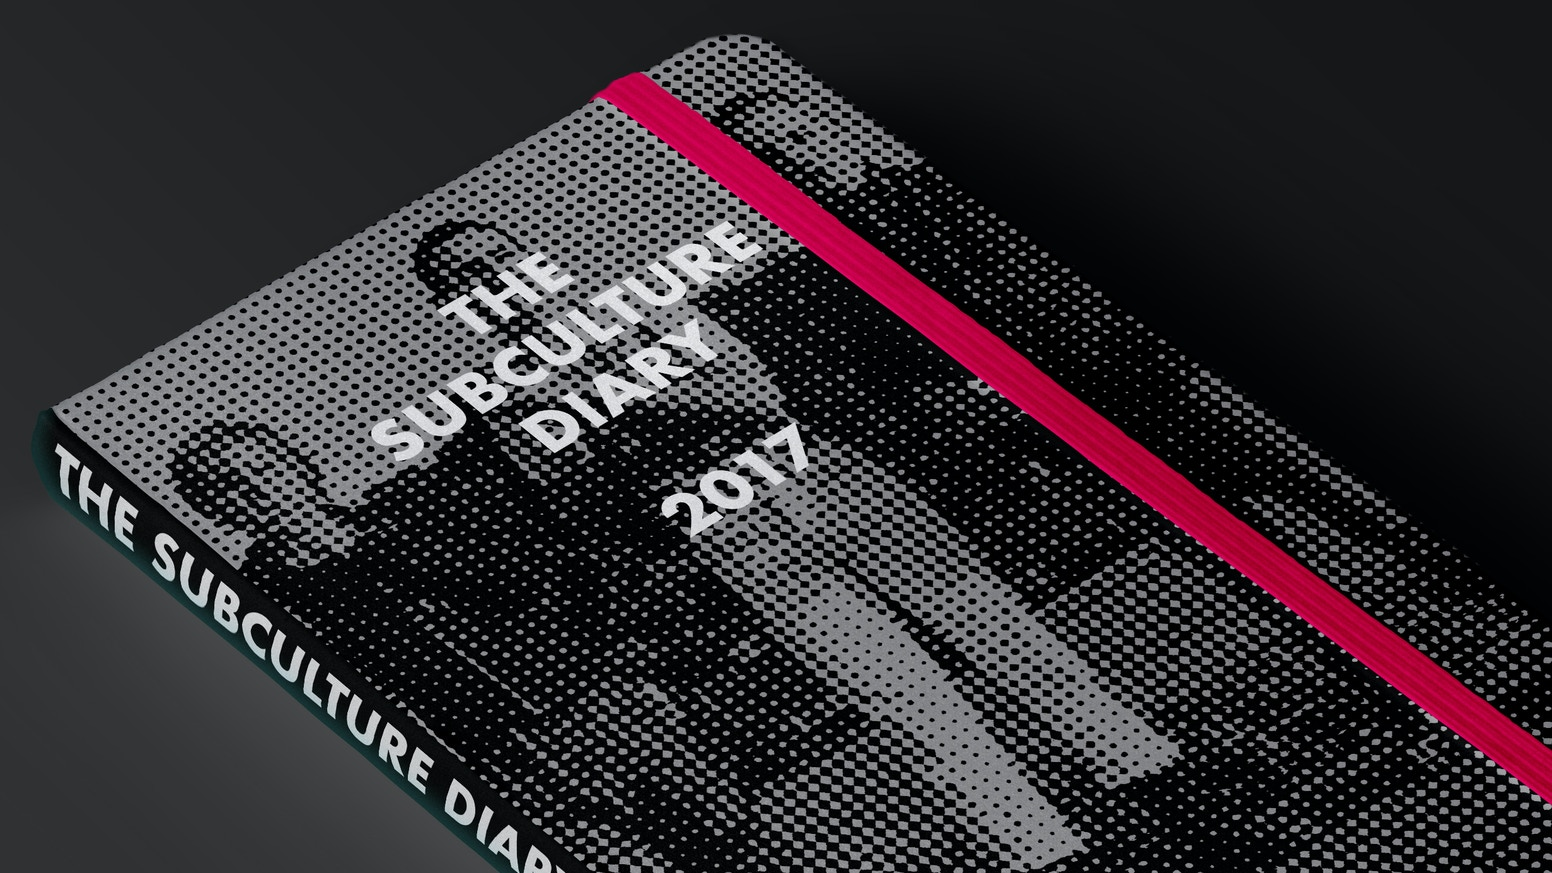 The Subculture Diary is a youth culture bible in your pocket, bringing social history and youth culture content into your daily life.